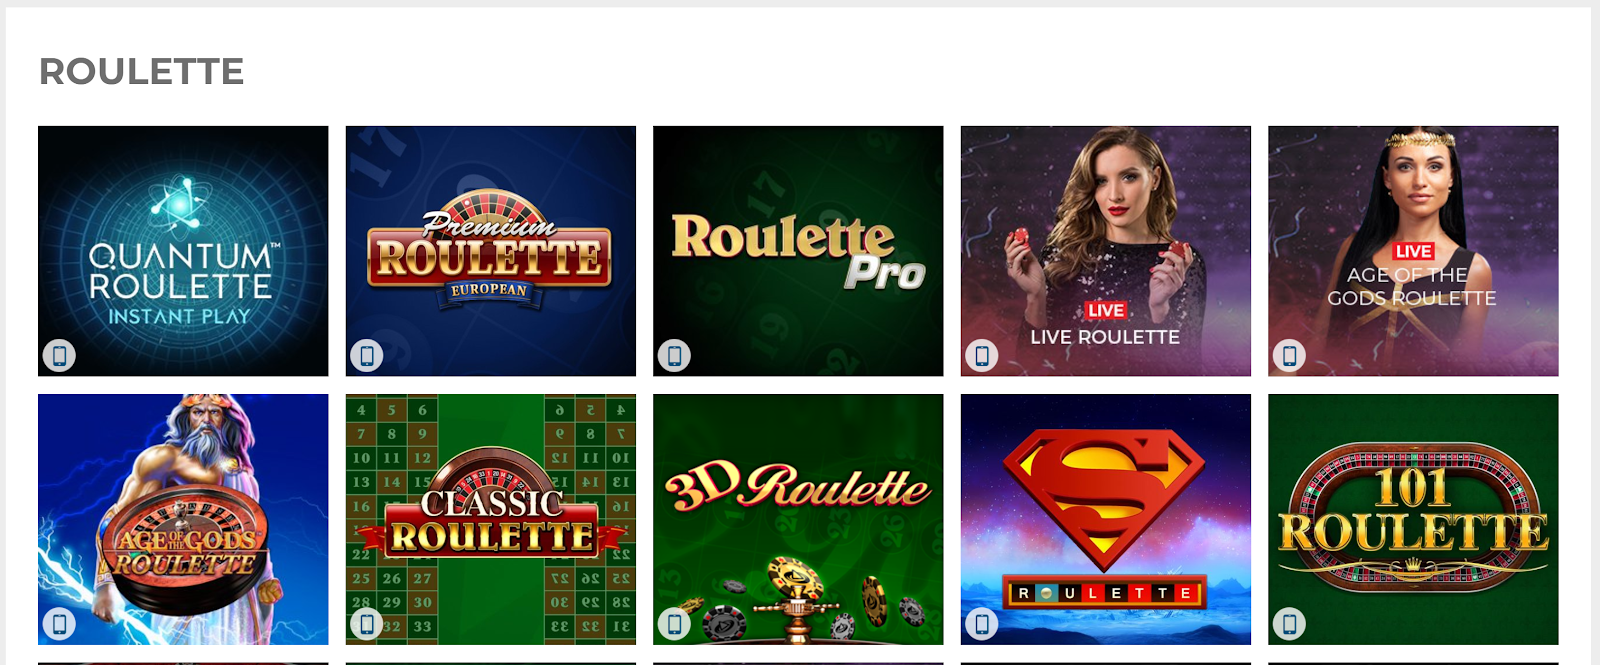 You can play plenty of great roulette games at The Sun Vegas Casino